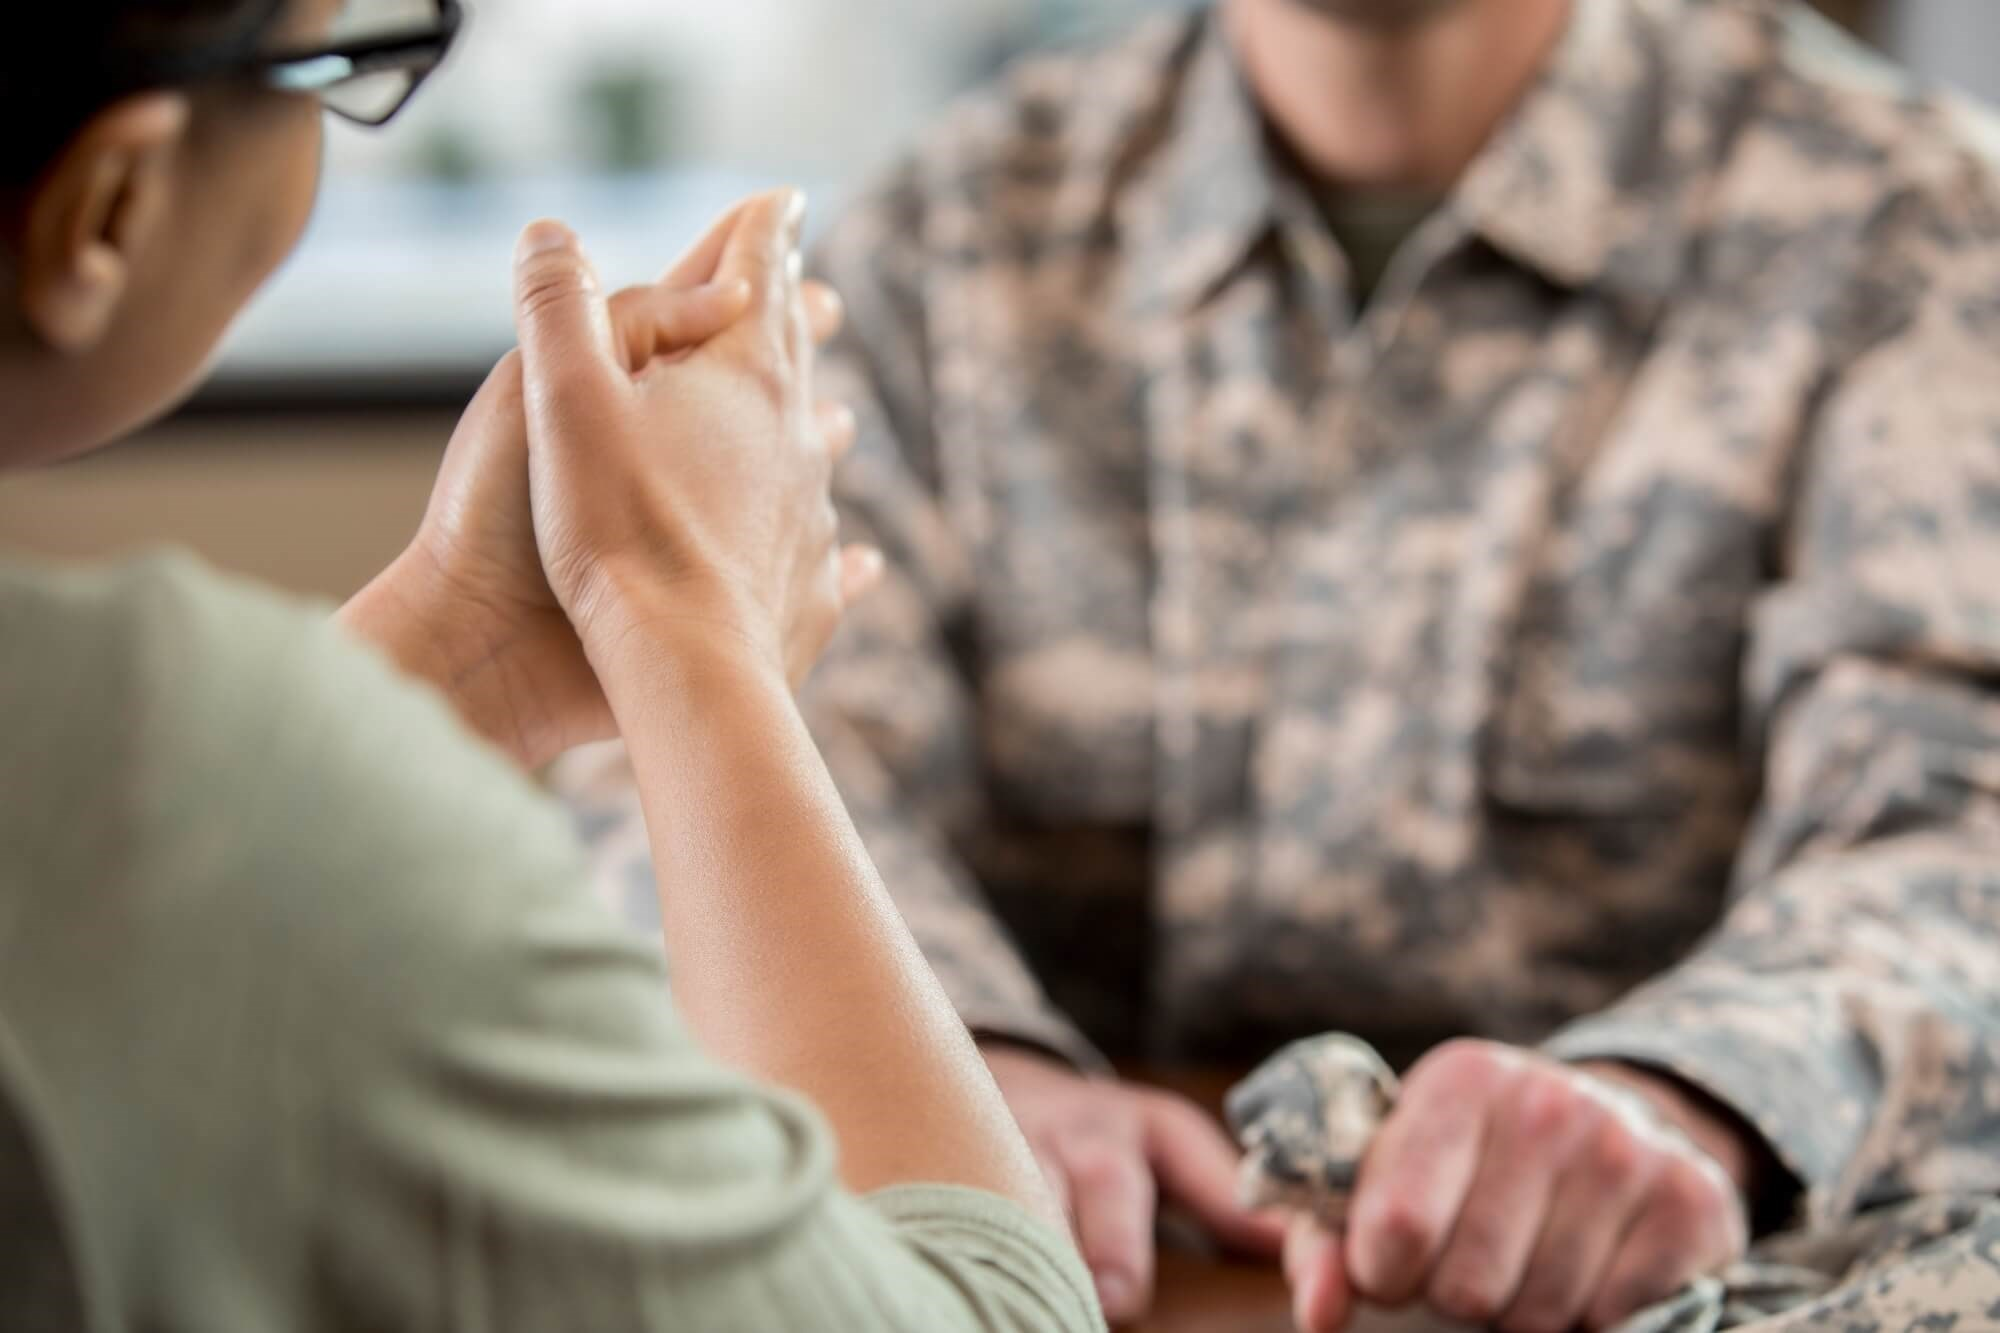 This research supports the use of mindfulness-based stress reduction as a treatment method for veterans with PTSD.